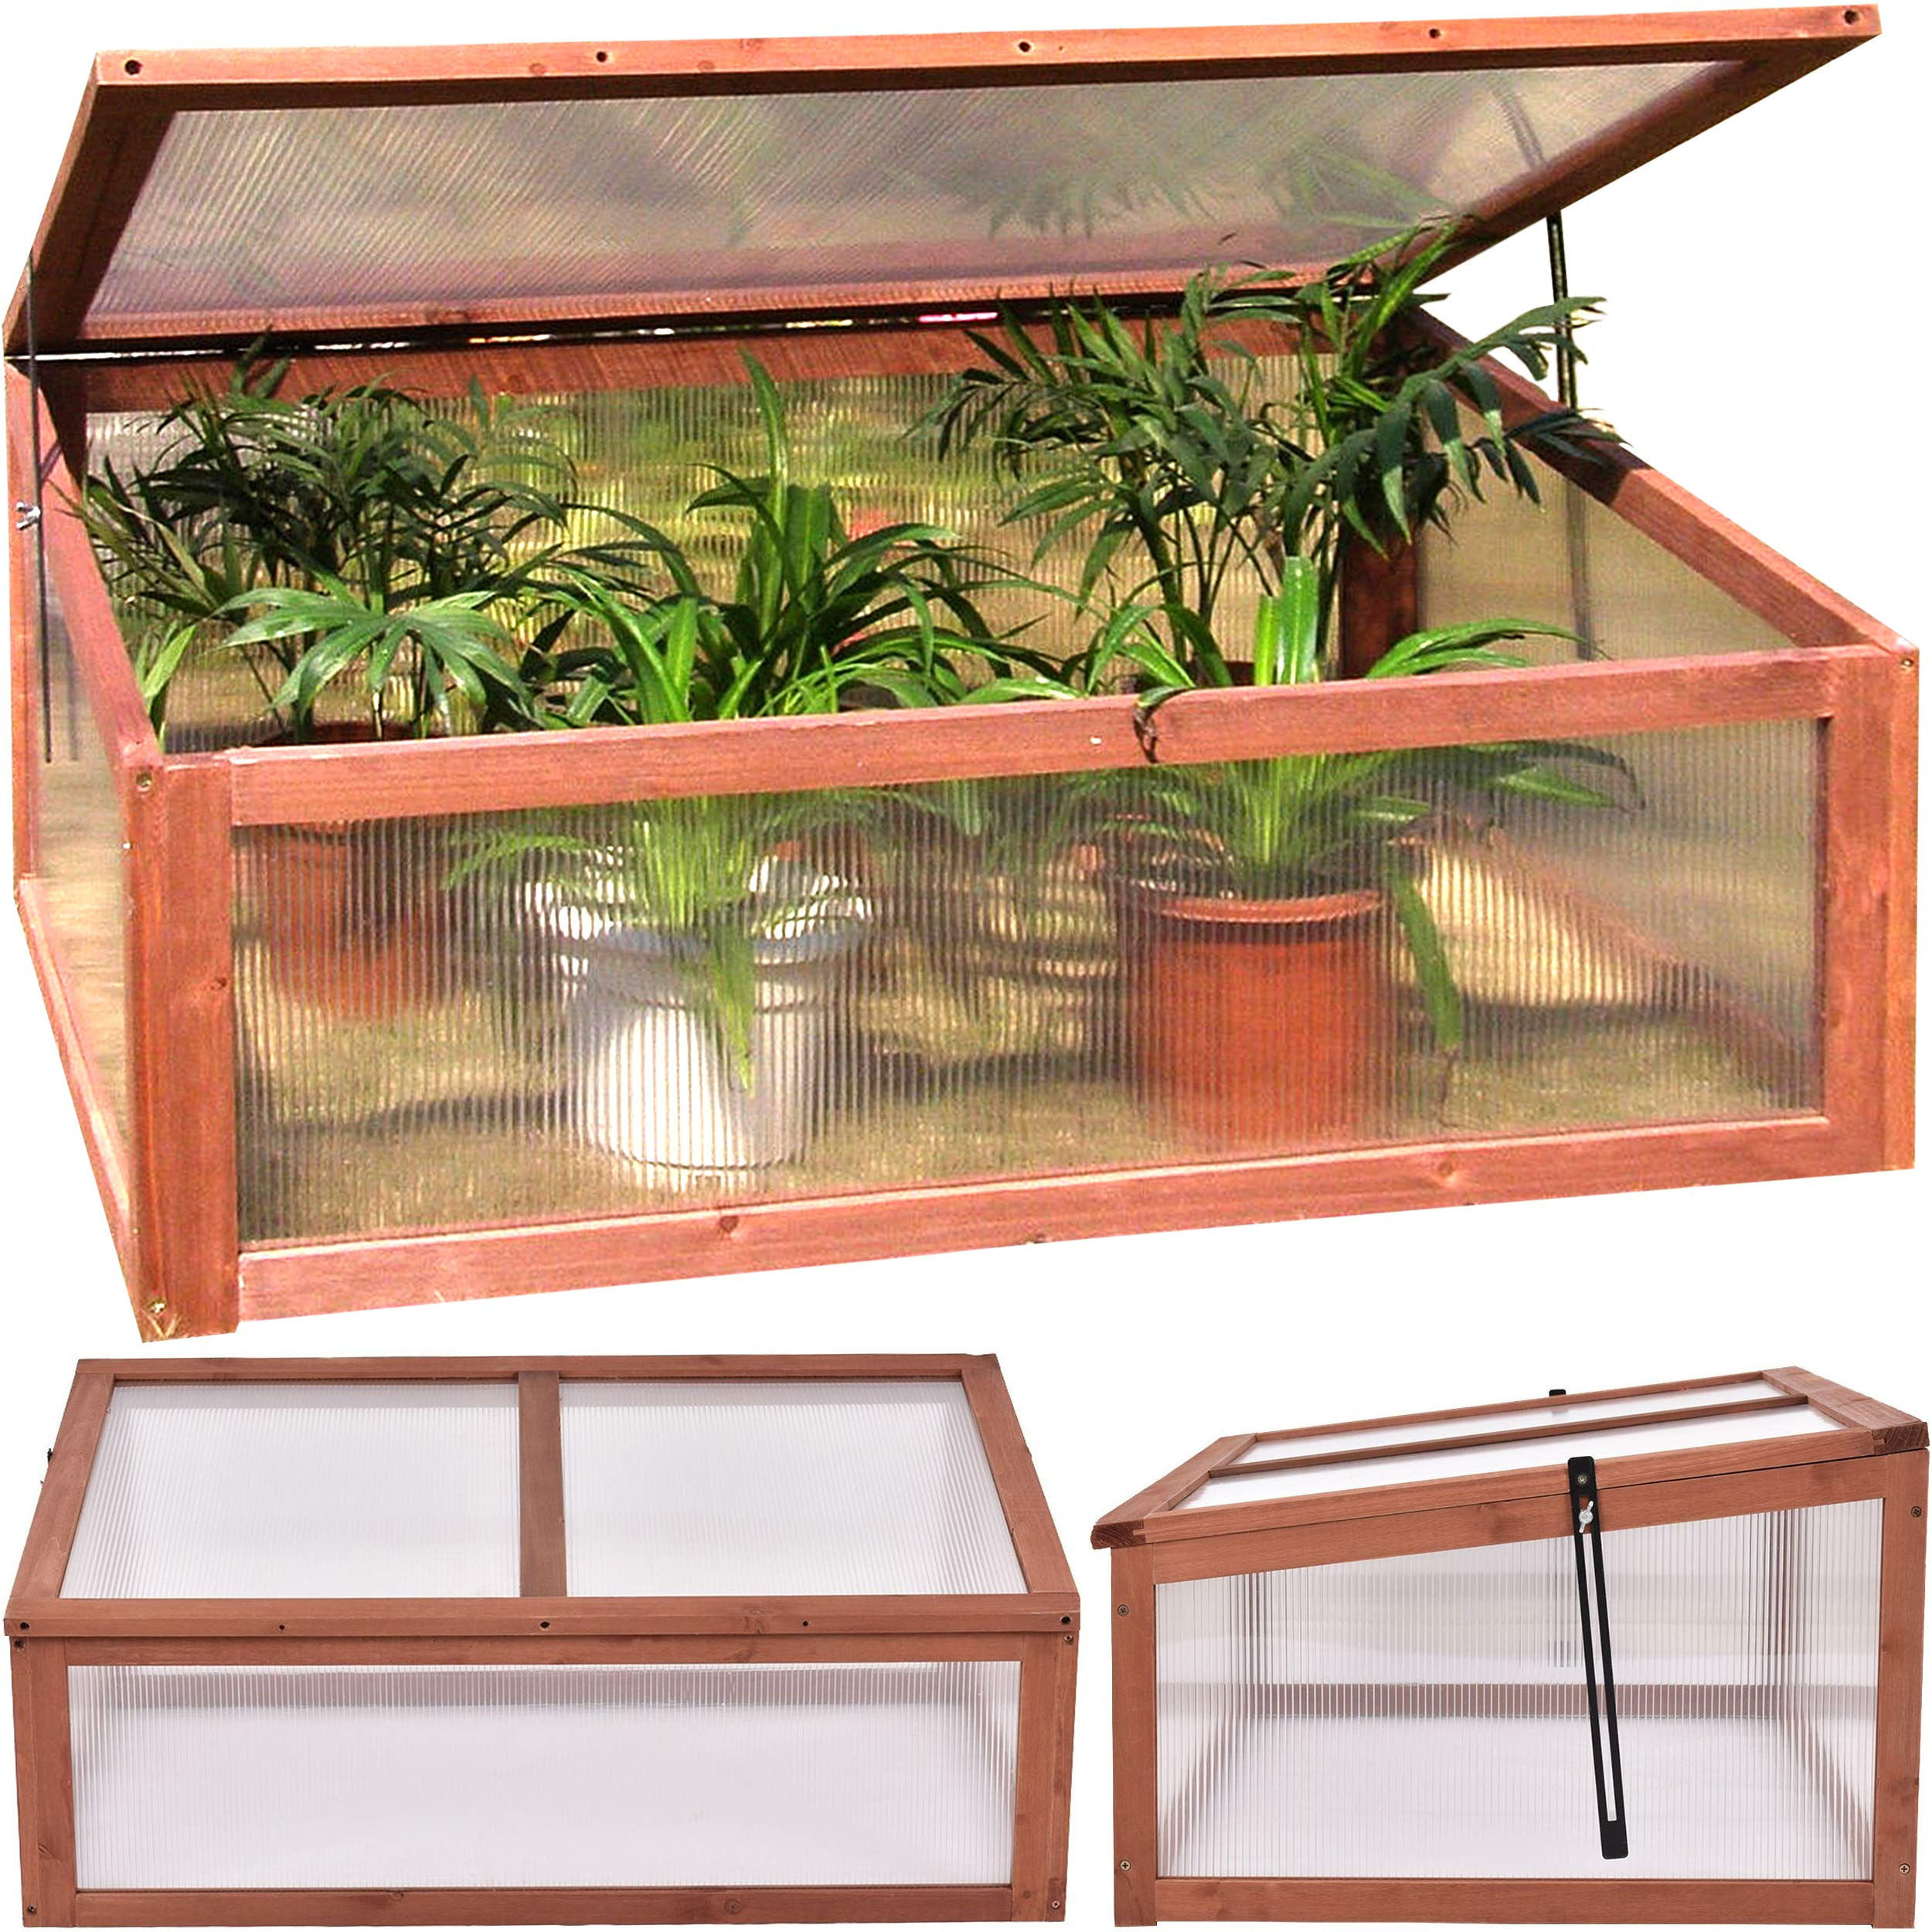 Garden Portable Wooden Greenhouse Cold Frame for Raised Flower Planter Protection 39.5'' Long x 25'' Wide x 15'' High